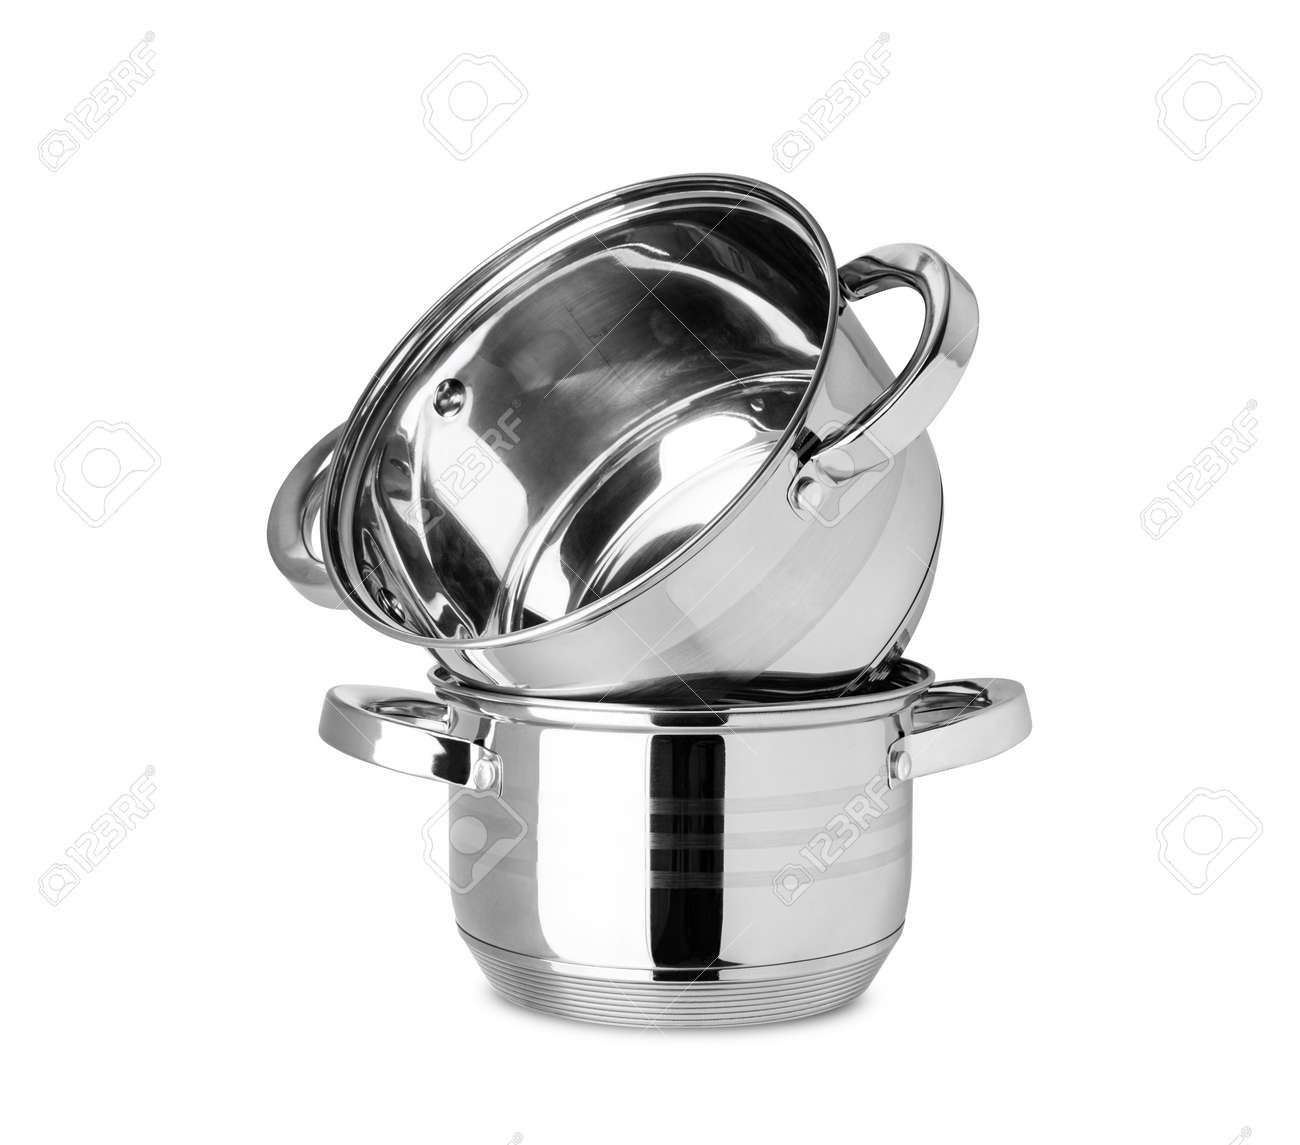 Stainless steel pot set, kitchen tools isolated on white background. With clipping path - 170242750